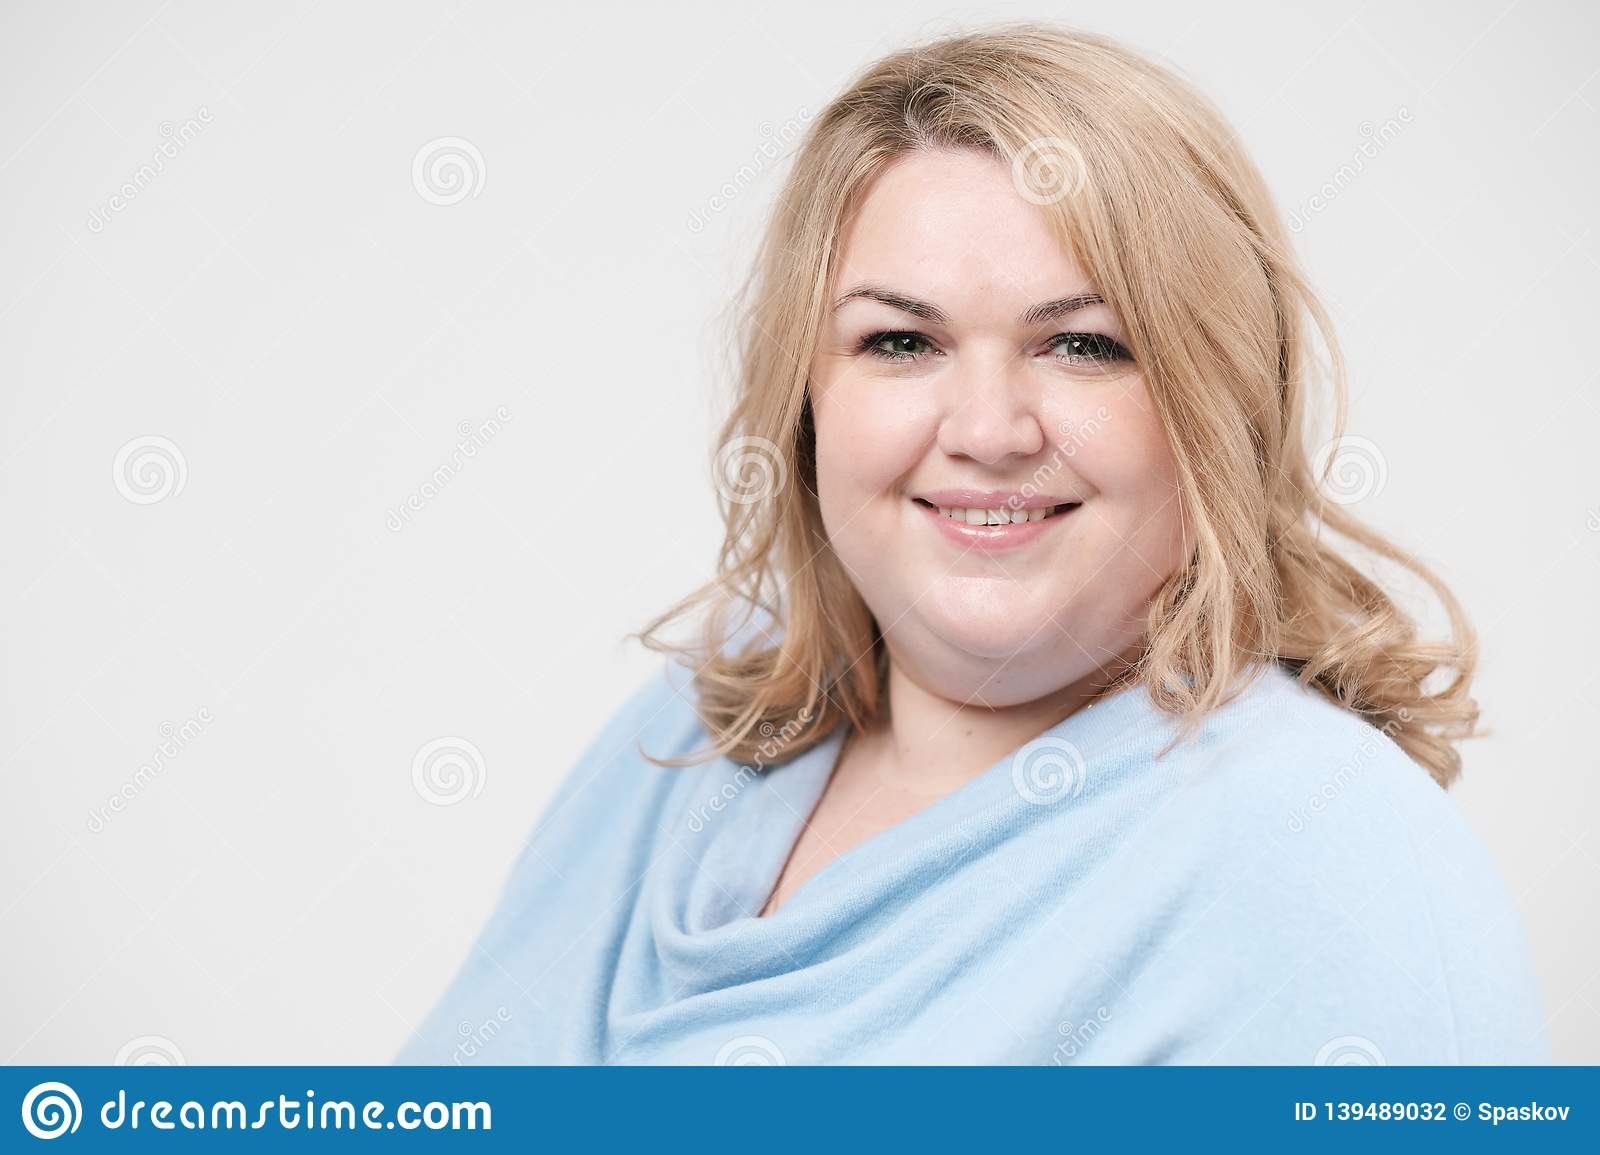 Young obese woman in casual blue clothes on a white background in the studio. Bodypositive.